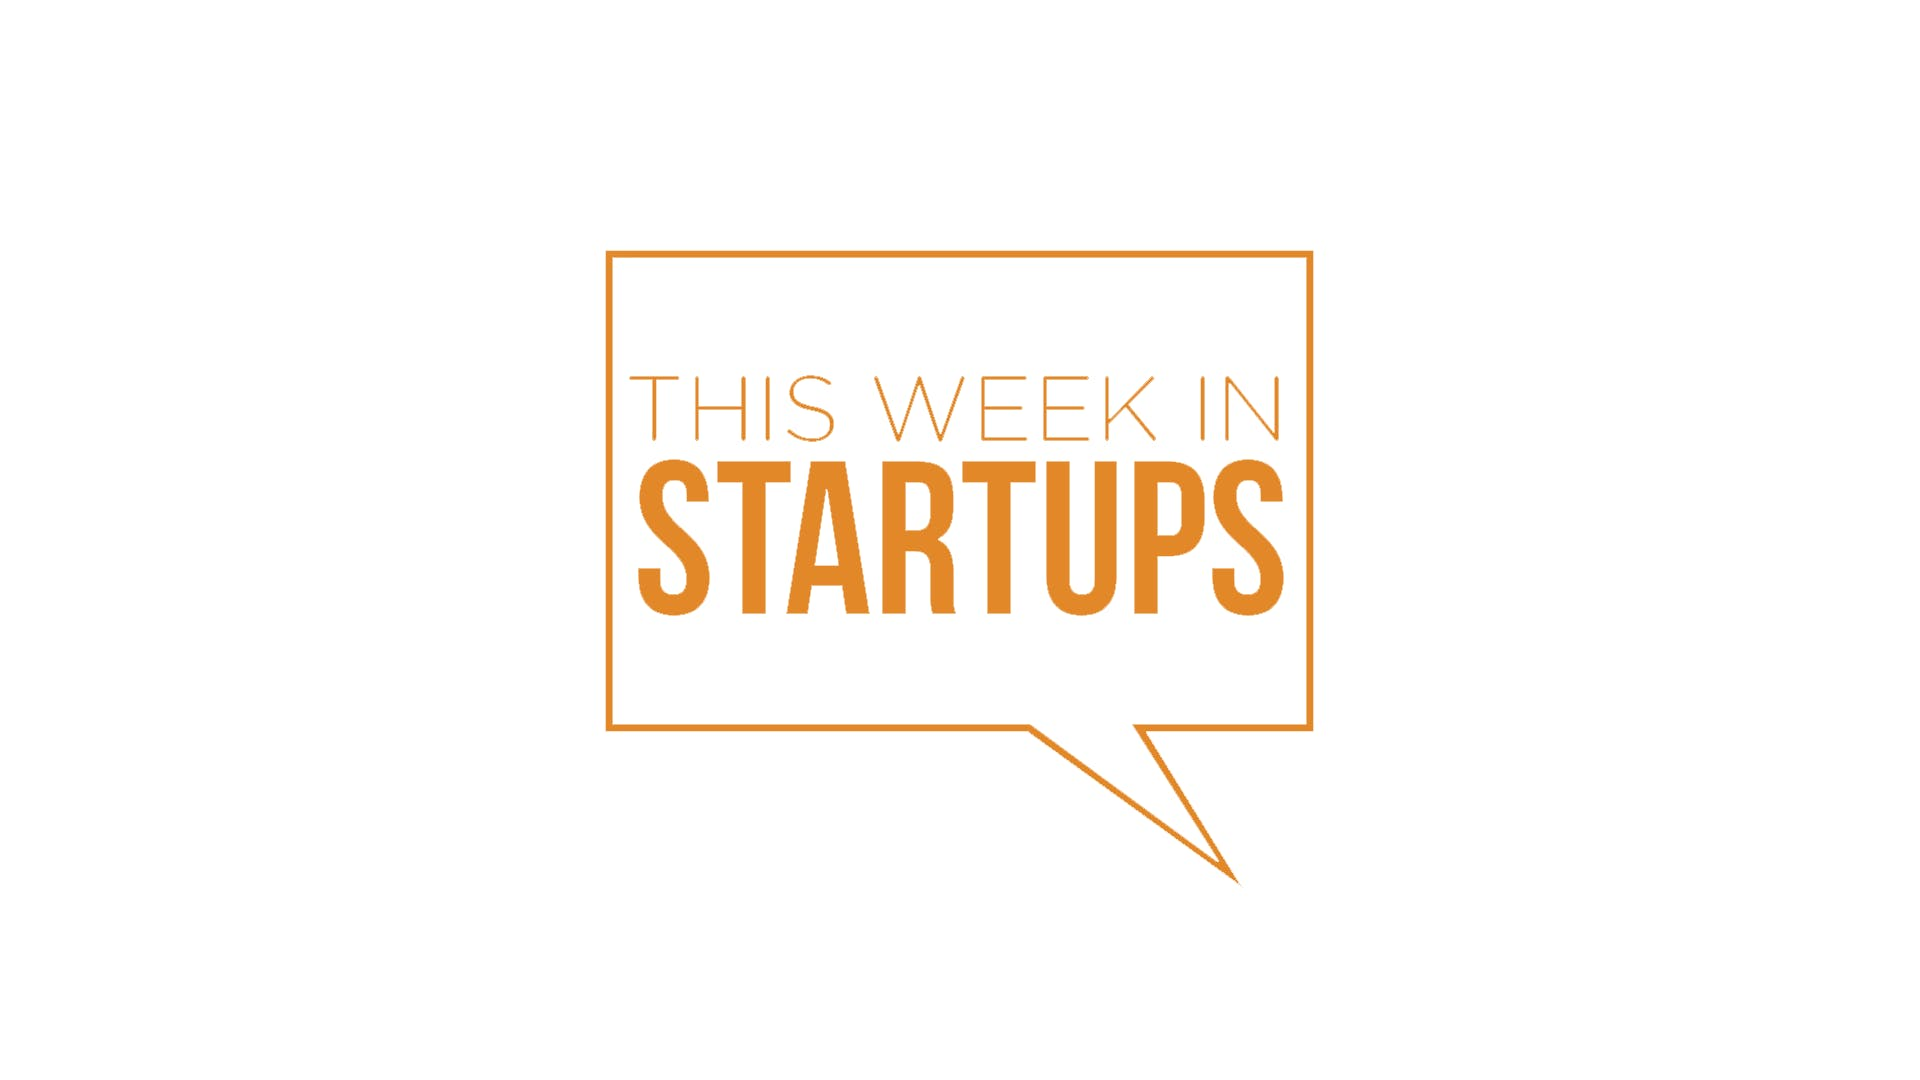 The logo for the podcast This Week in Startups